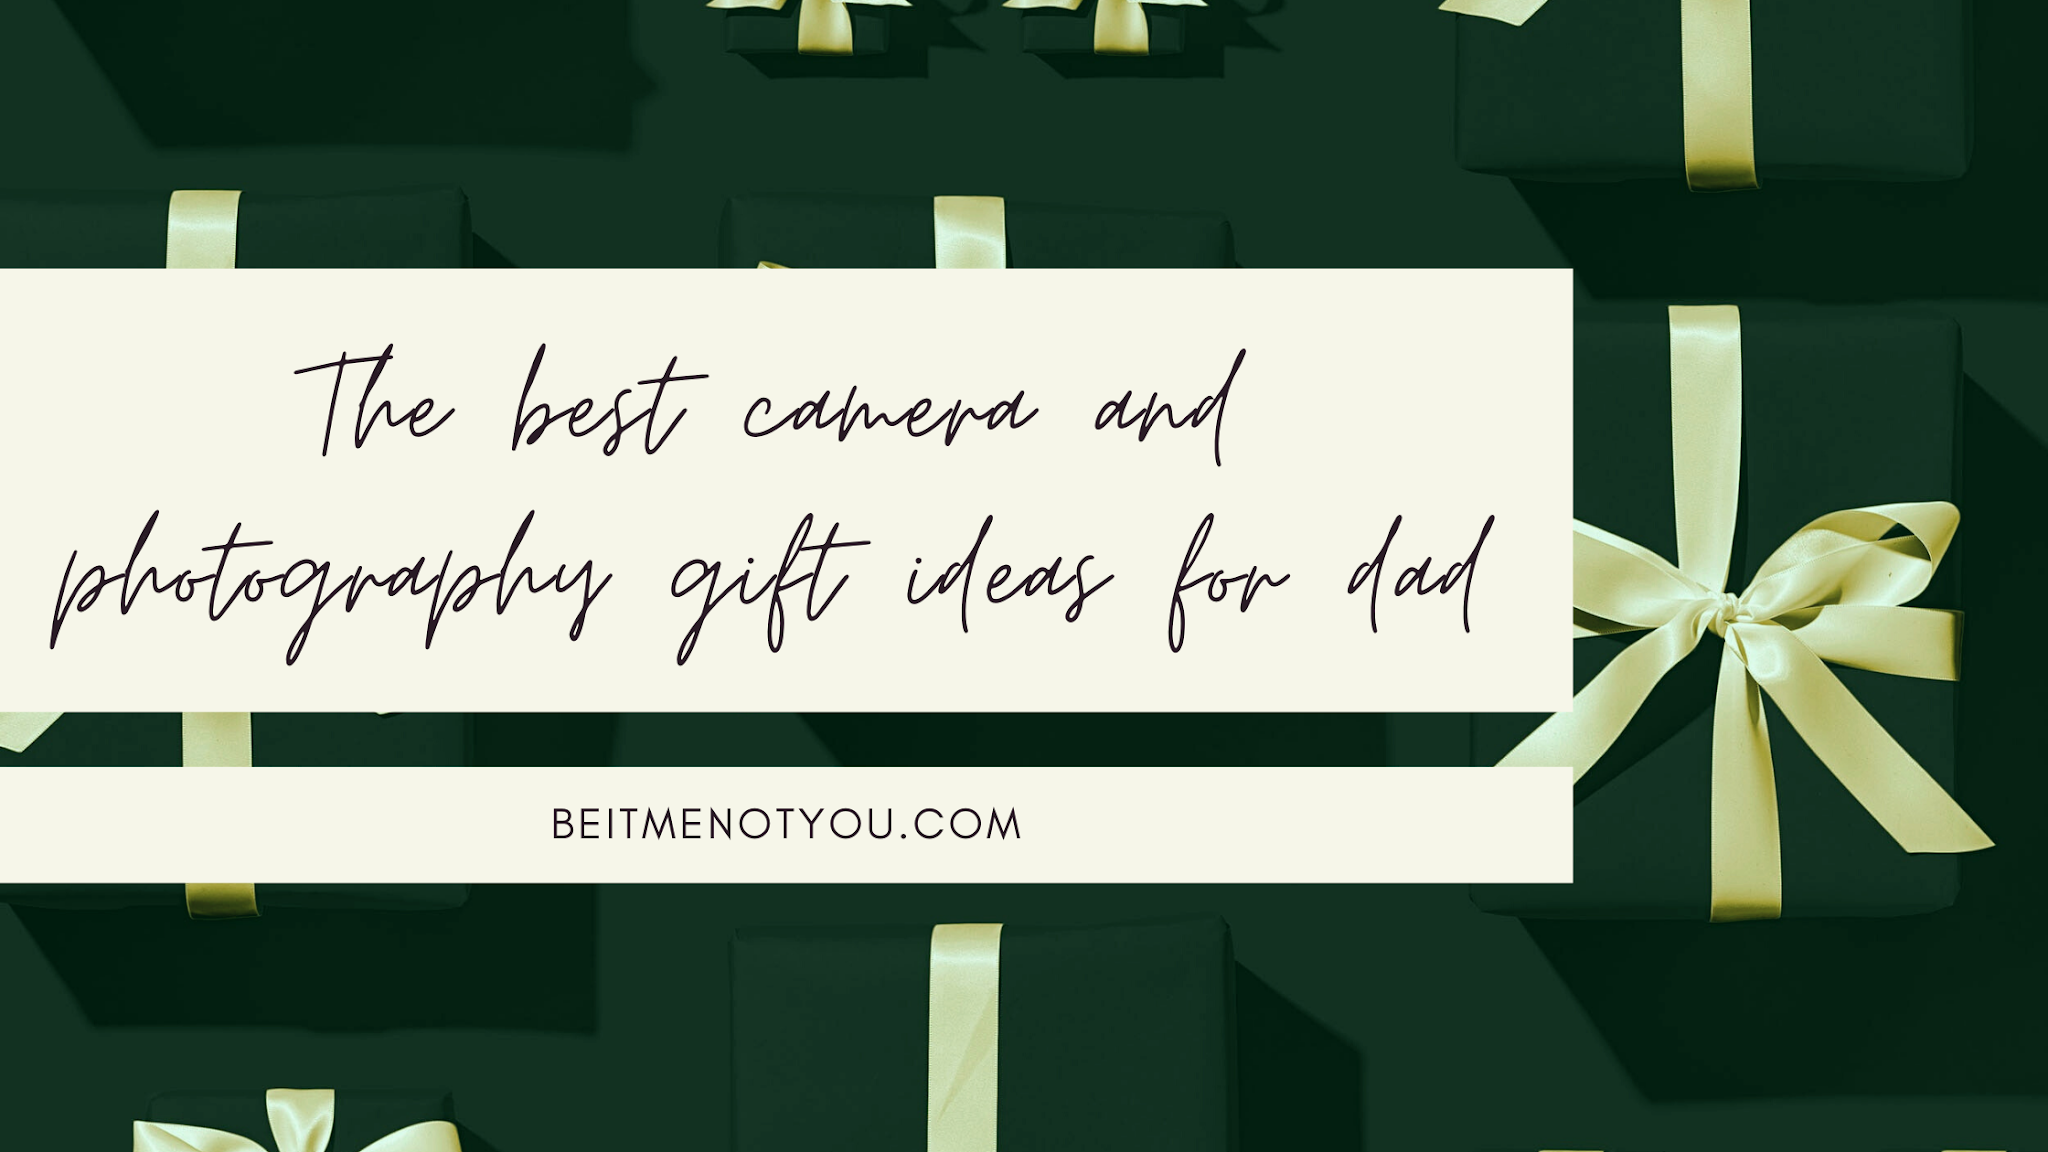 The best camera and photography gift ideas for dad